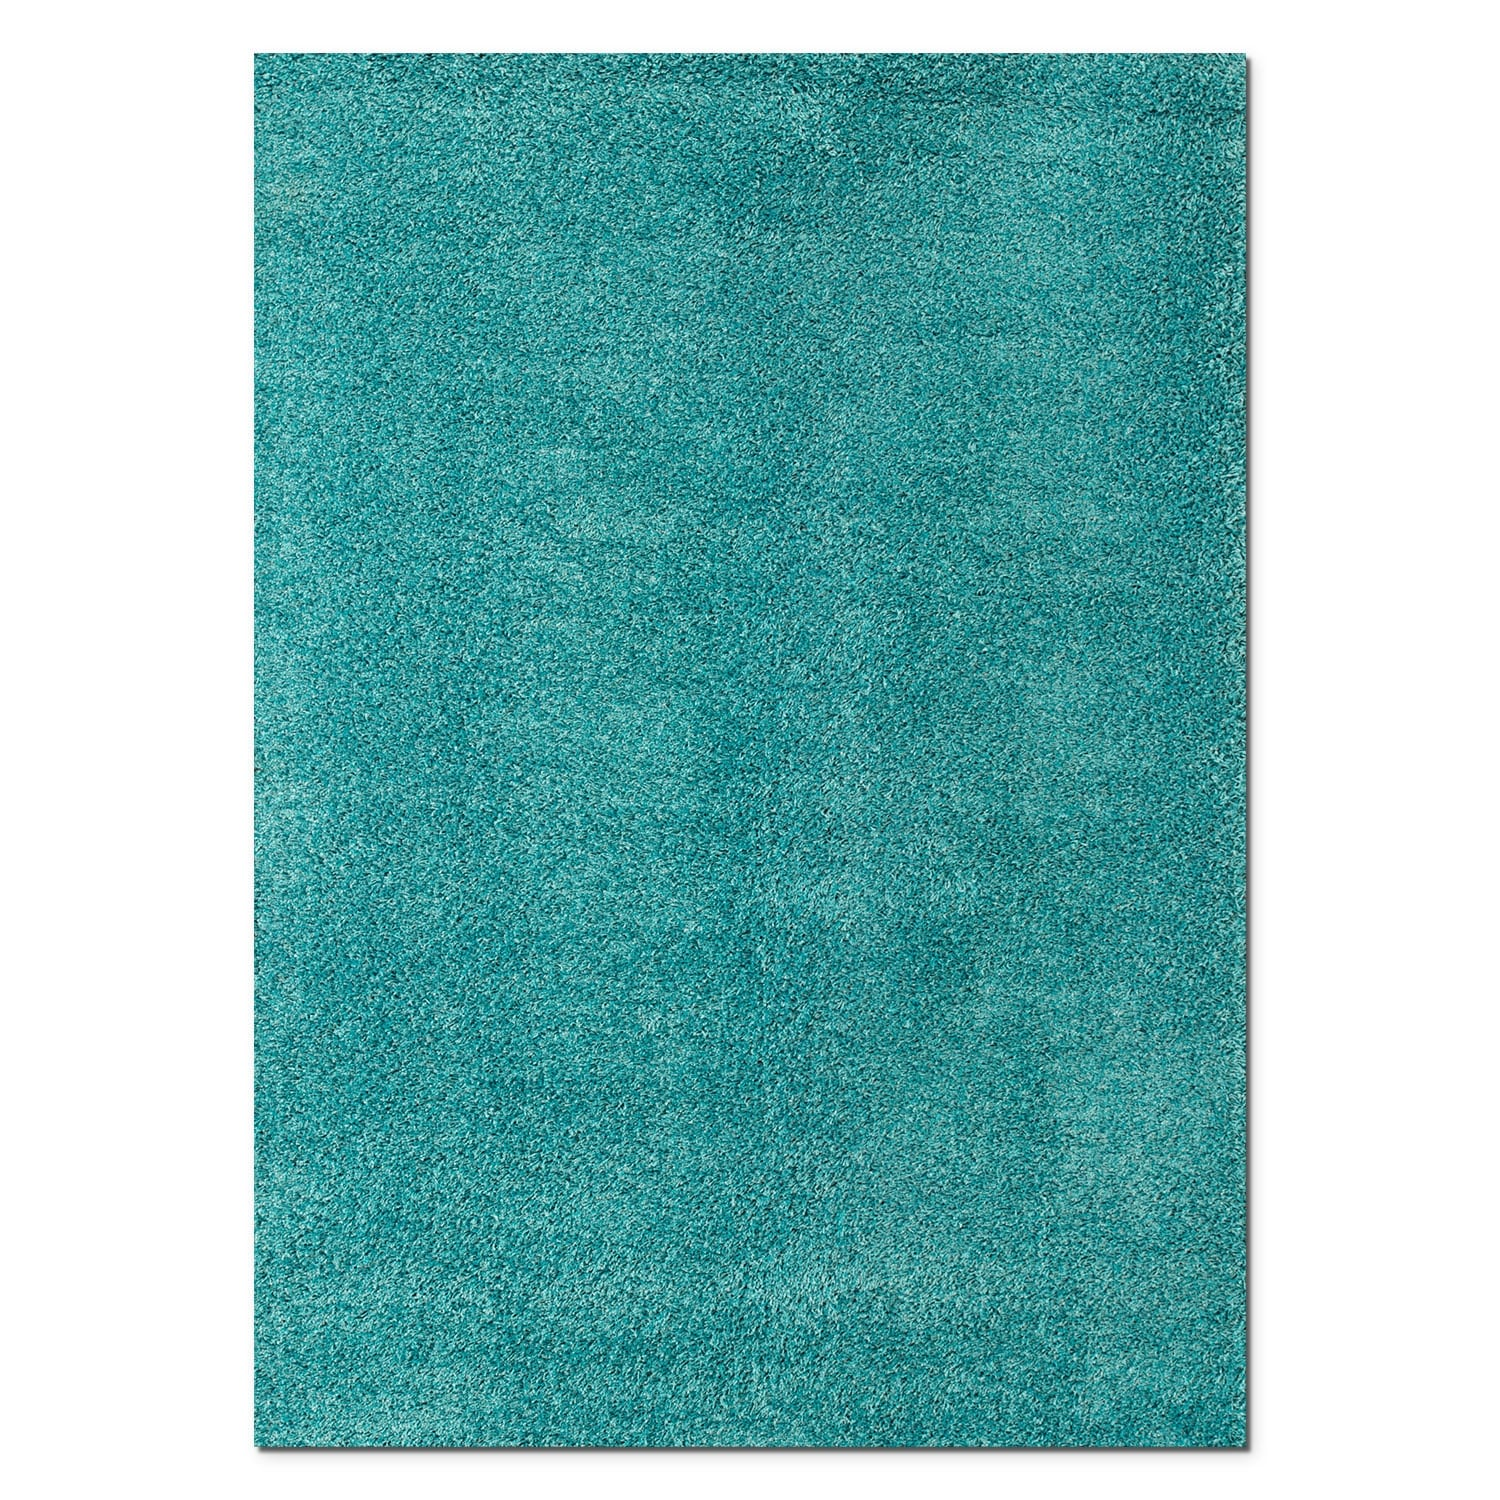 Domino Turquoise Shag Area Rug (5' x 8')